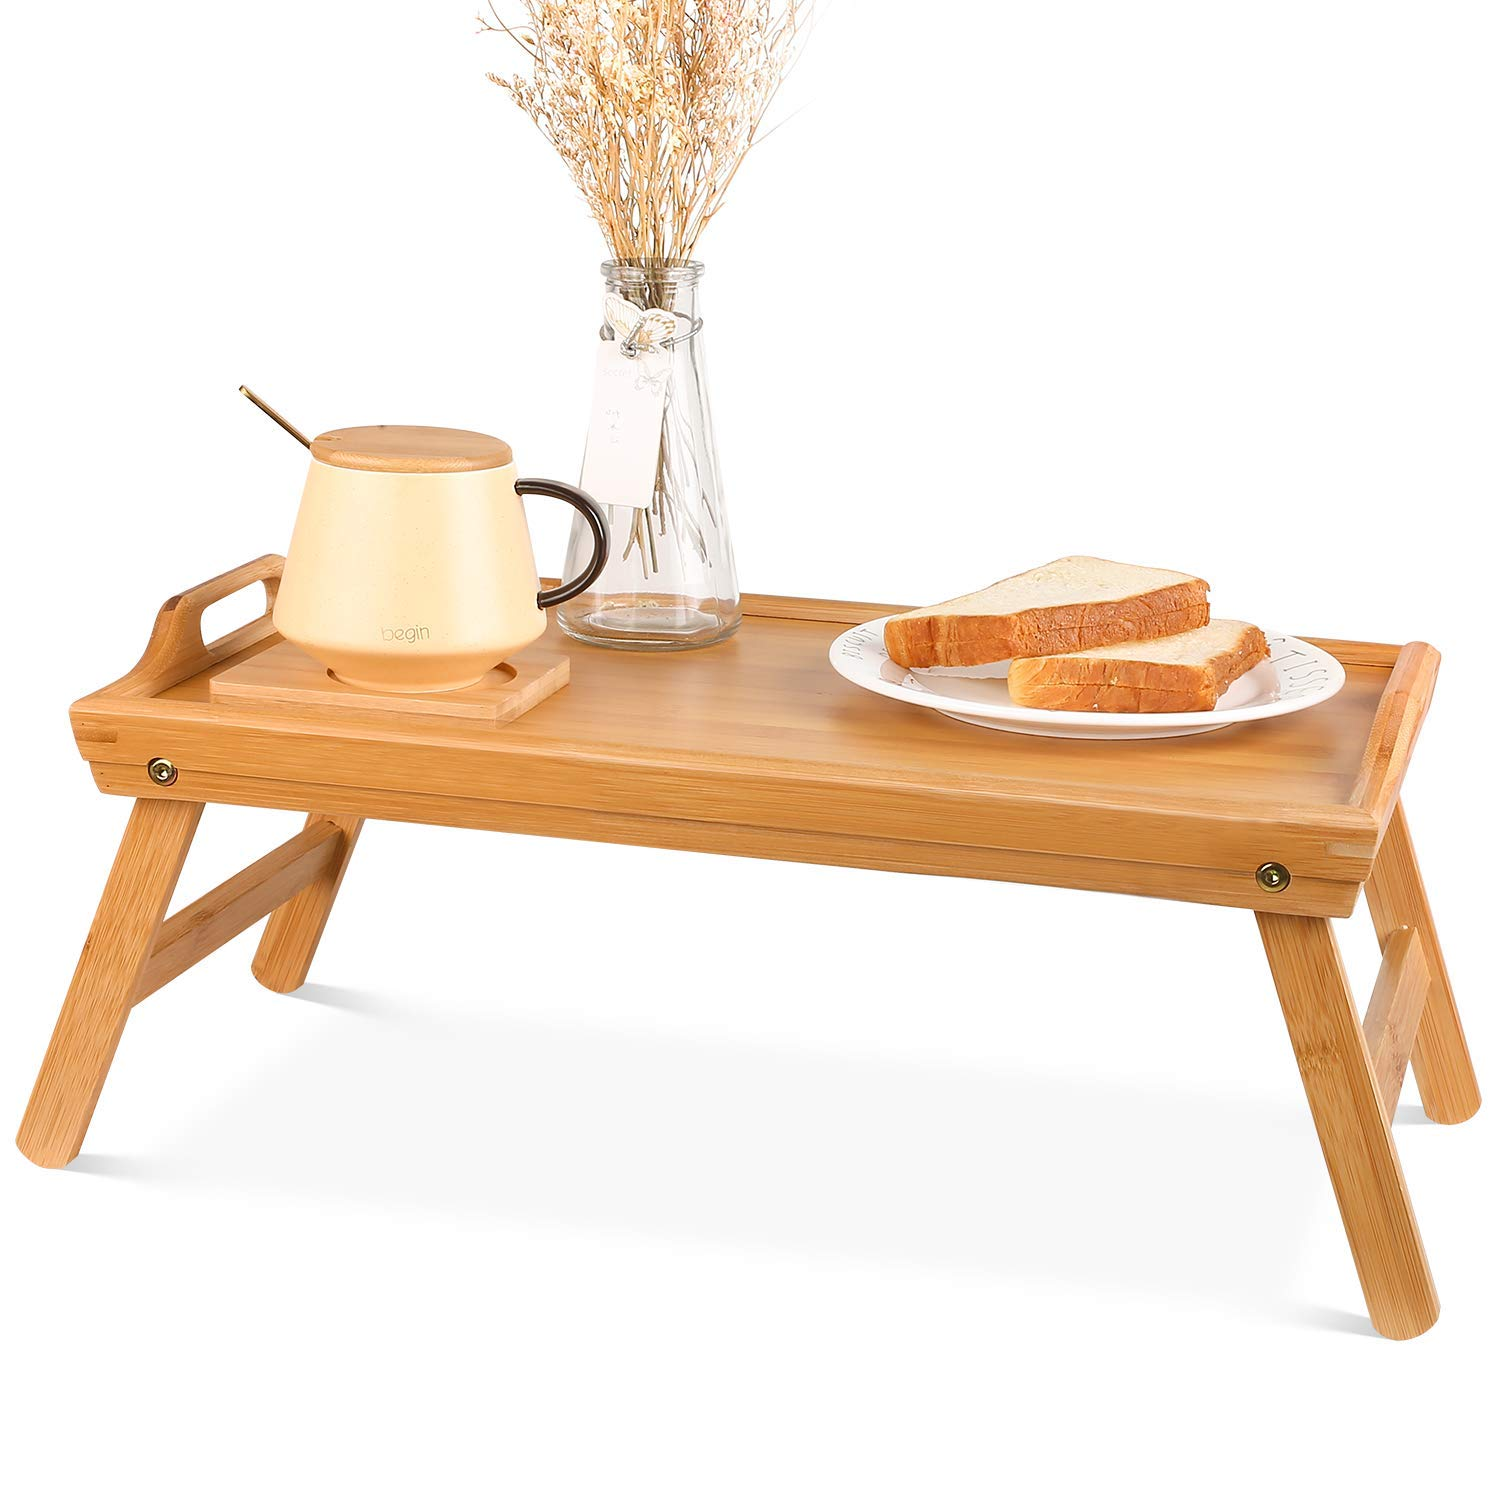 Natural Bamboo Serving Tray Set Bed Tray Breakfast Table With Legs Bamboo Tray Serving 3